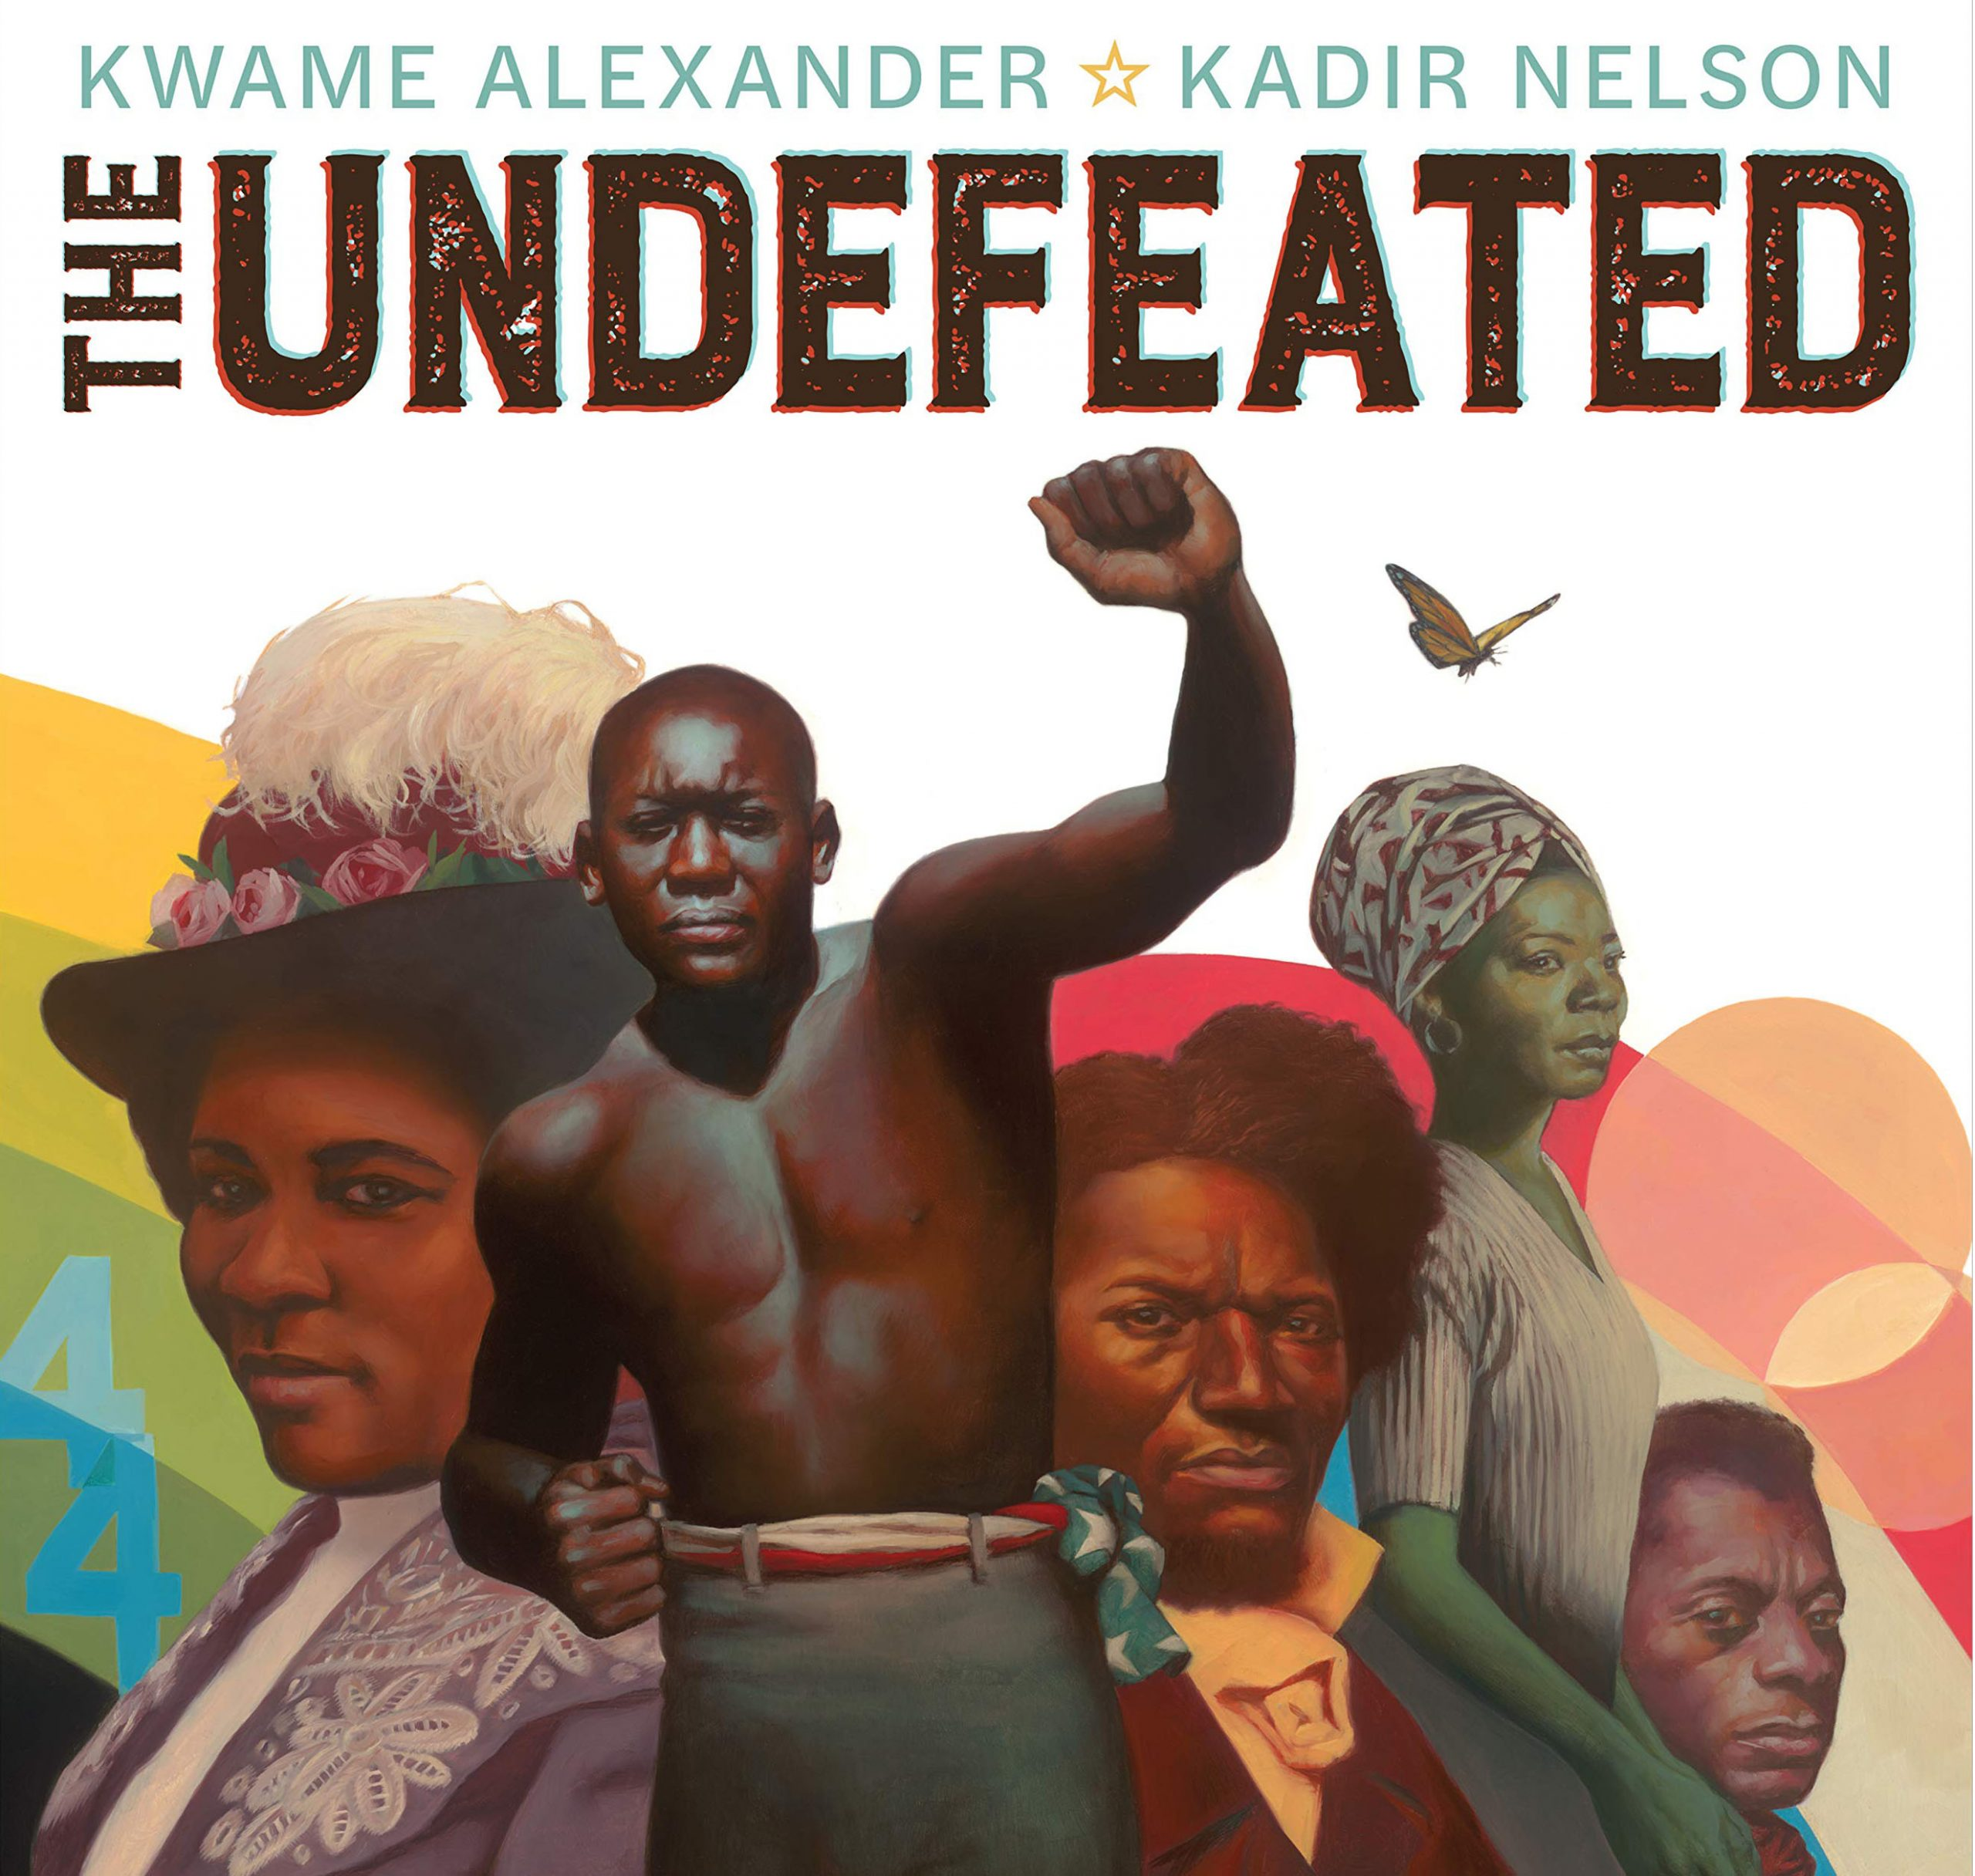 THE UNDEFEATED KWAME ALEXANDER AND KADIR NELSON